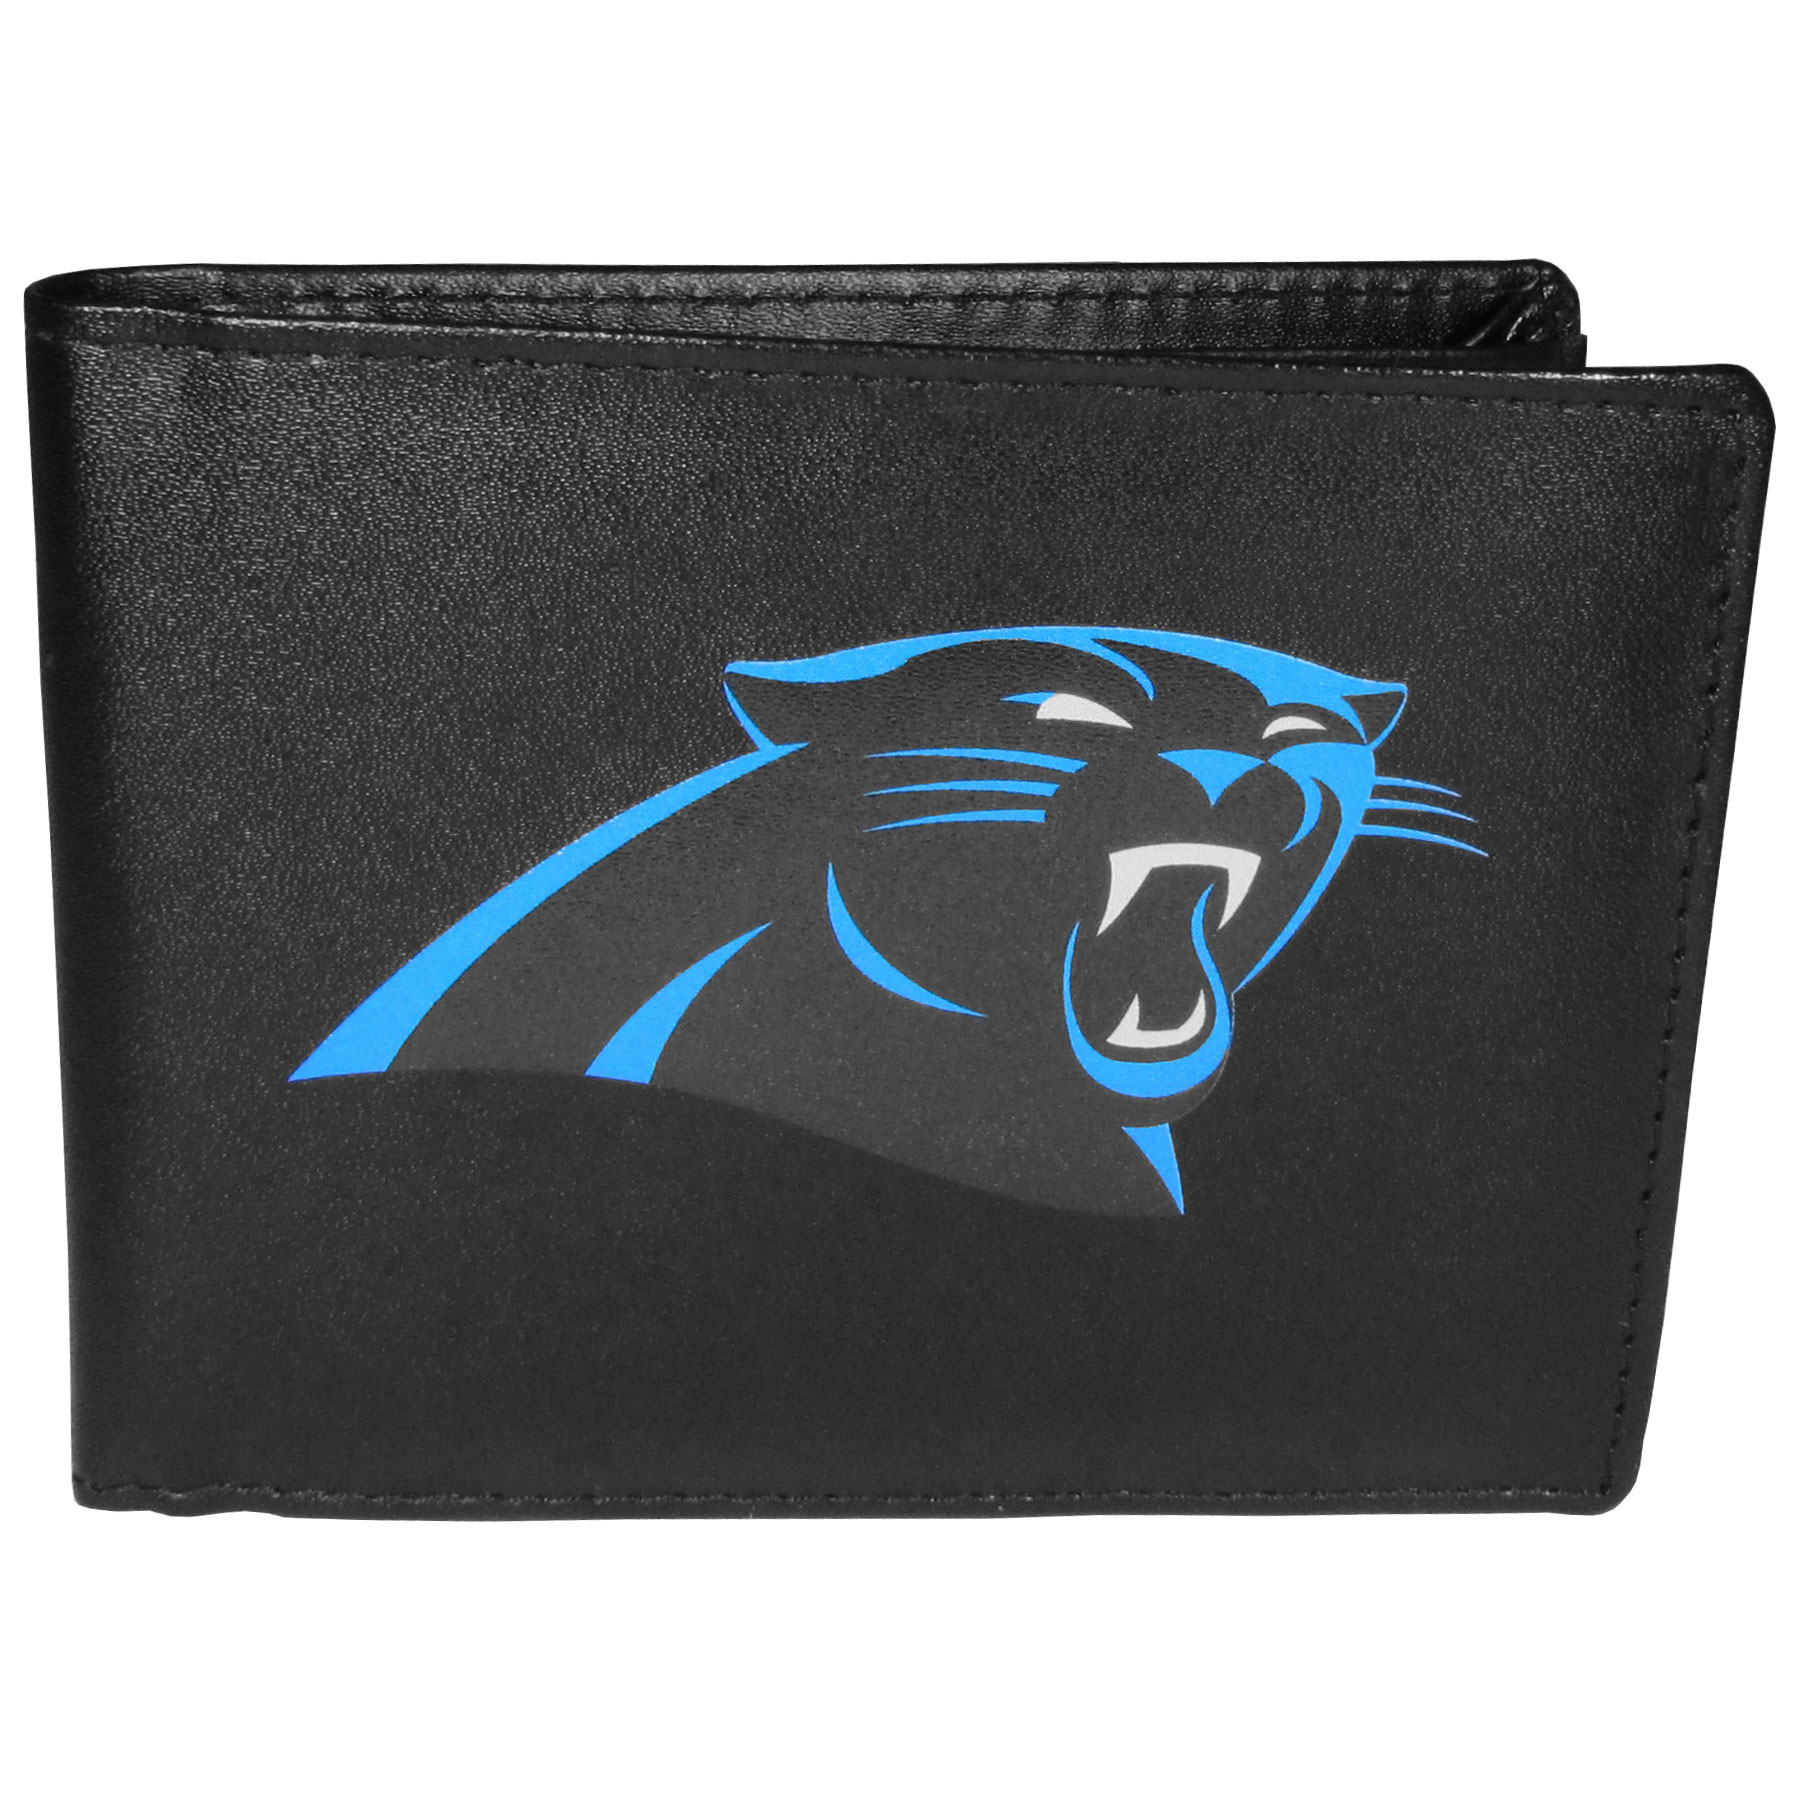 Carolina Panthers Leather Bi-fold Wallet, Large Logo - Our classic fine leather bi-fold wallet is meticulously crafted with genuine leather that will age beautifully so you will have a quality wallet for years to come. The wallet opens to a large, billfold pocket and numerous credit card slots and has a convenient windowed ID slot. The front of the wallet features an extra large Carolina Panthers printed logo.